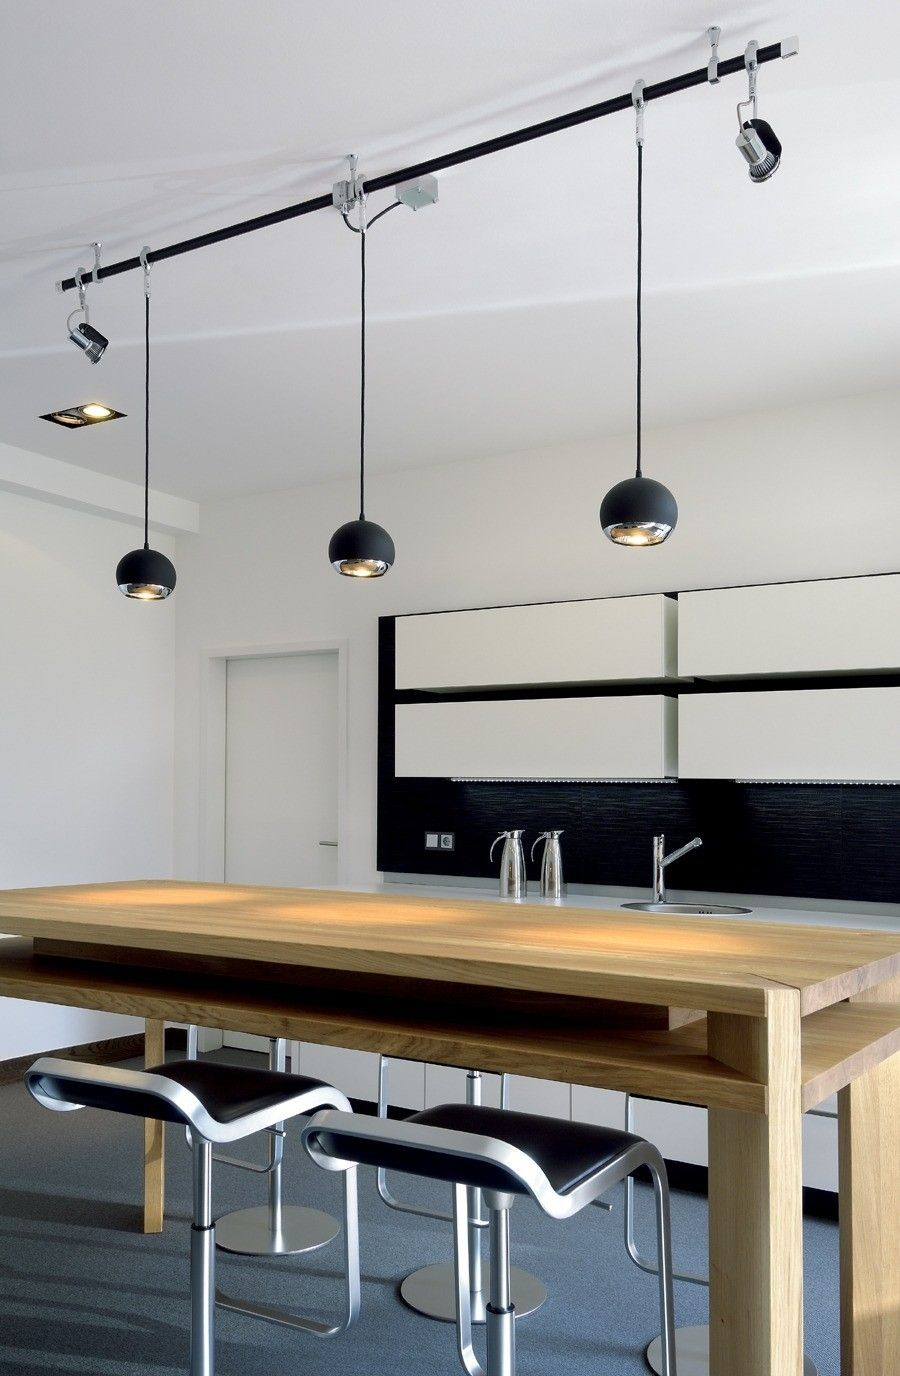 Cool track lighting for a kitchen pinteres cool track lighting for a kitchen more aloadofball Images